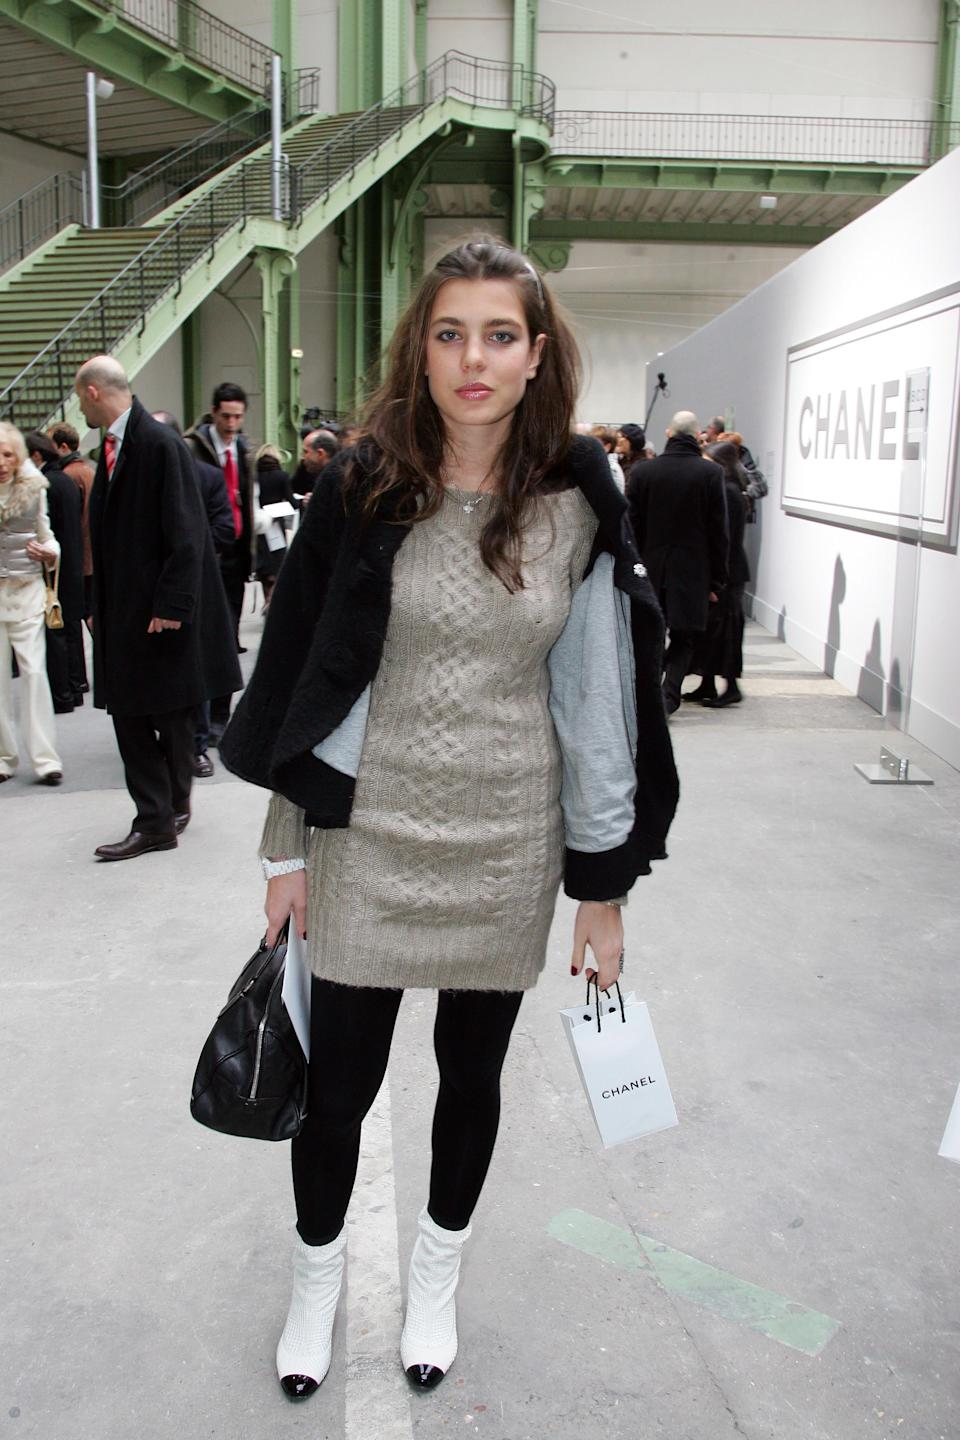 PARIS- JANUARY 23:  Charlotte Casiraghi attends the Chanel Fashion show, during Paris Fashion Week (Haute Couture) Spring-Summer 2007 at Grand Palais on January 23, 2007 in Paris, France.  (Photo by Michel Dufour/WireImage)